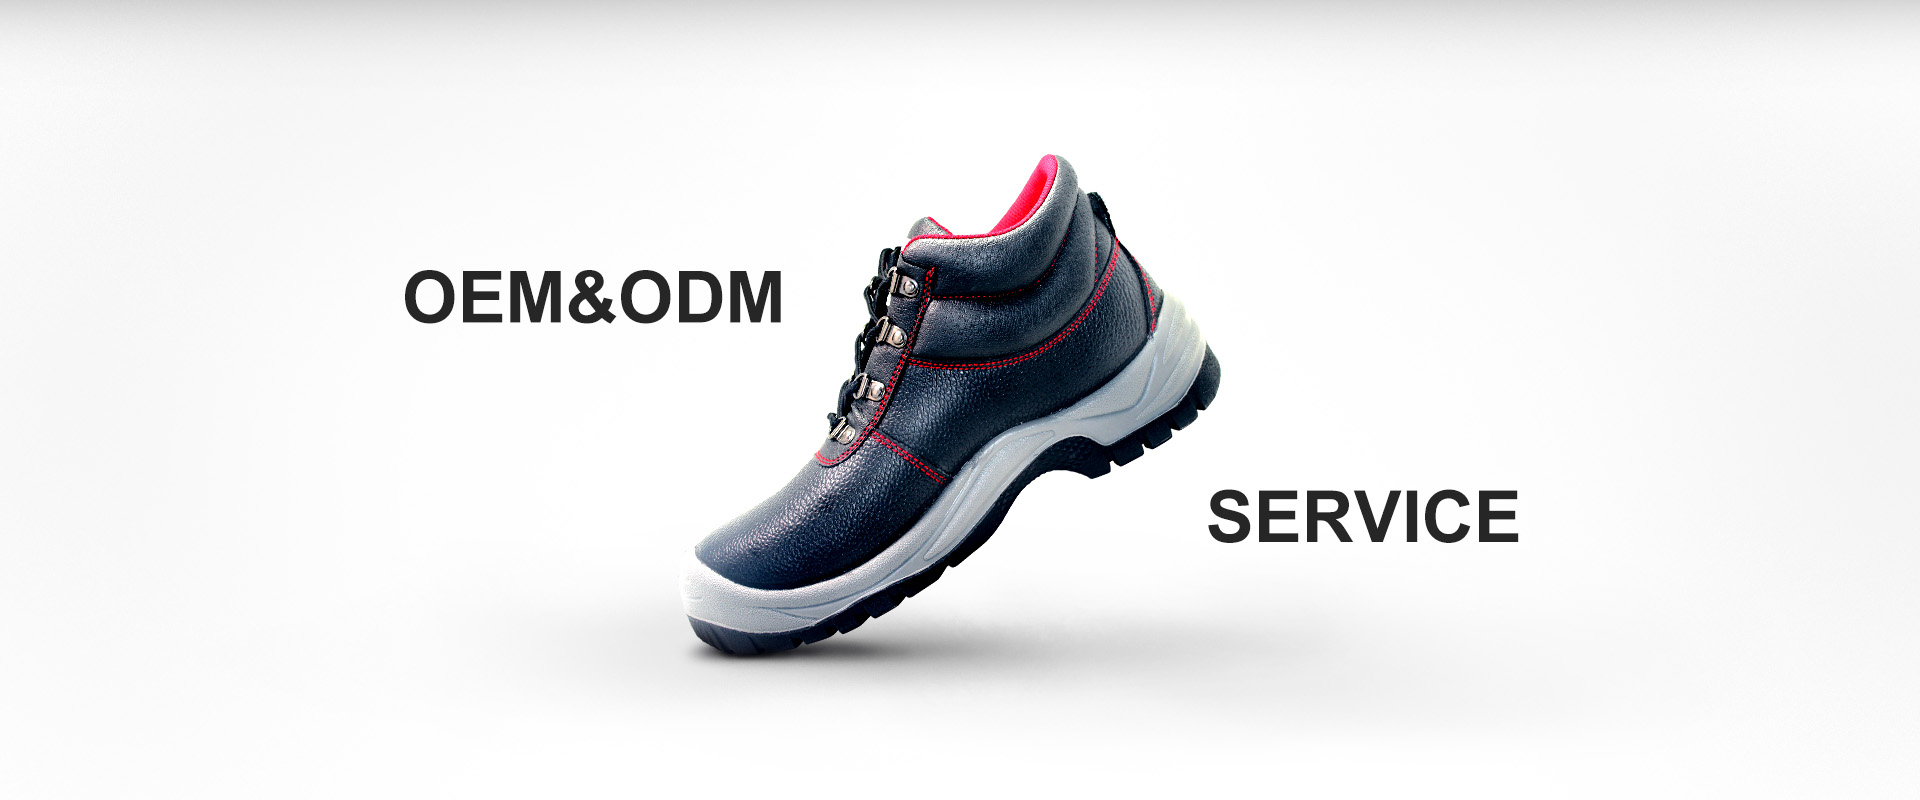 Oem Shoes Manufacturing, Wholesale